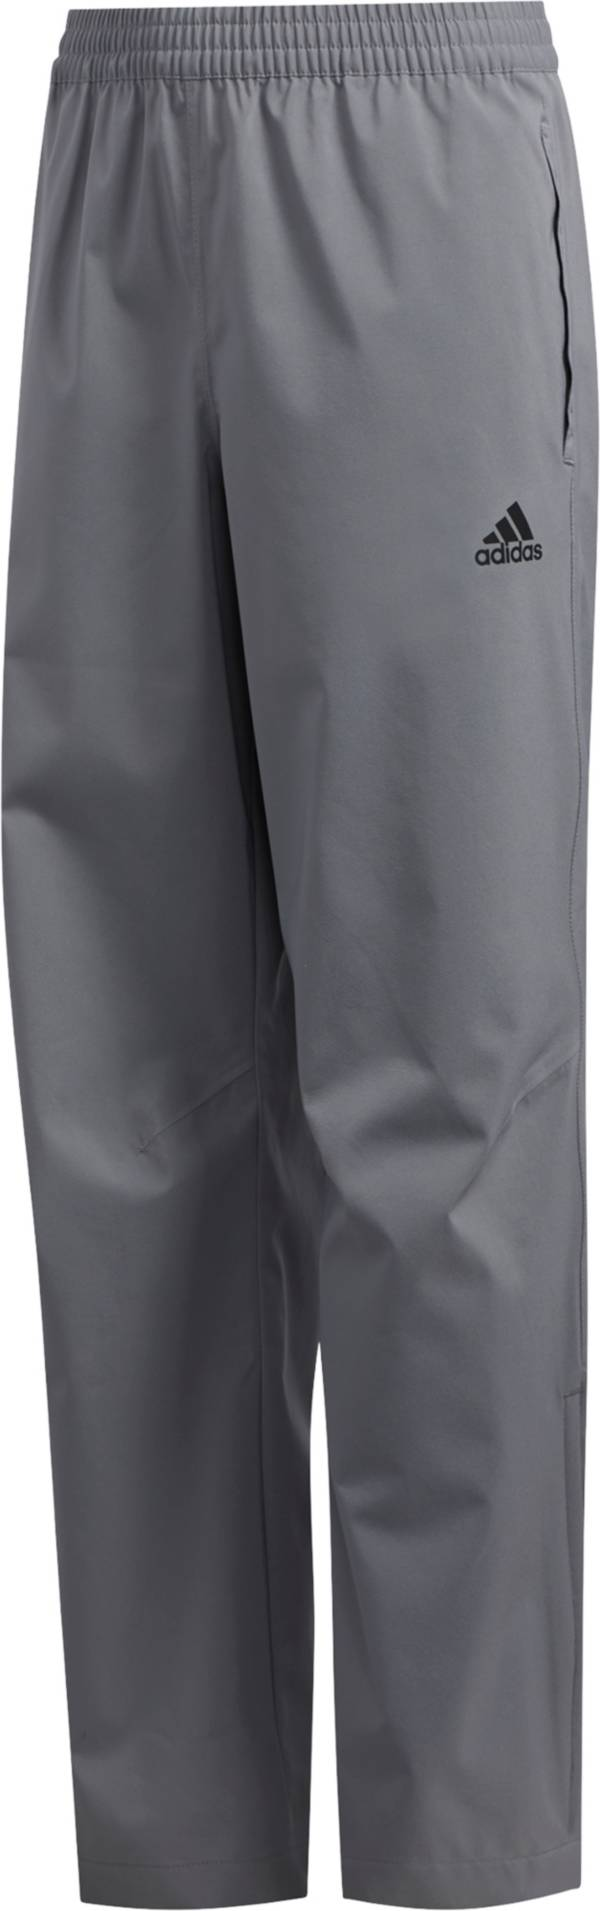 adidas Boys' Provisional Golf Rain Pants product image